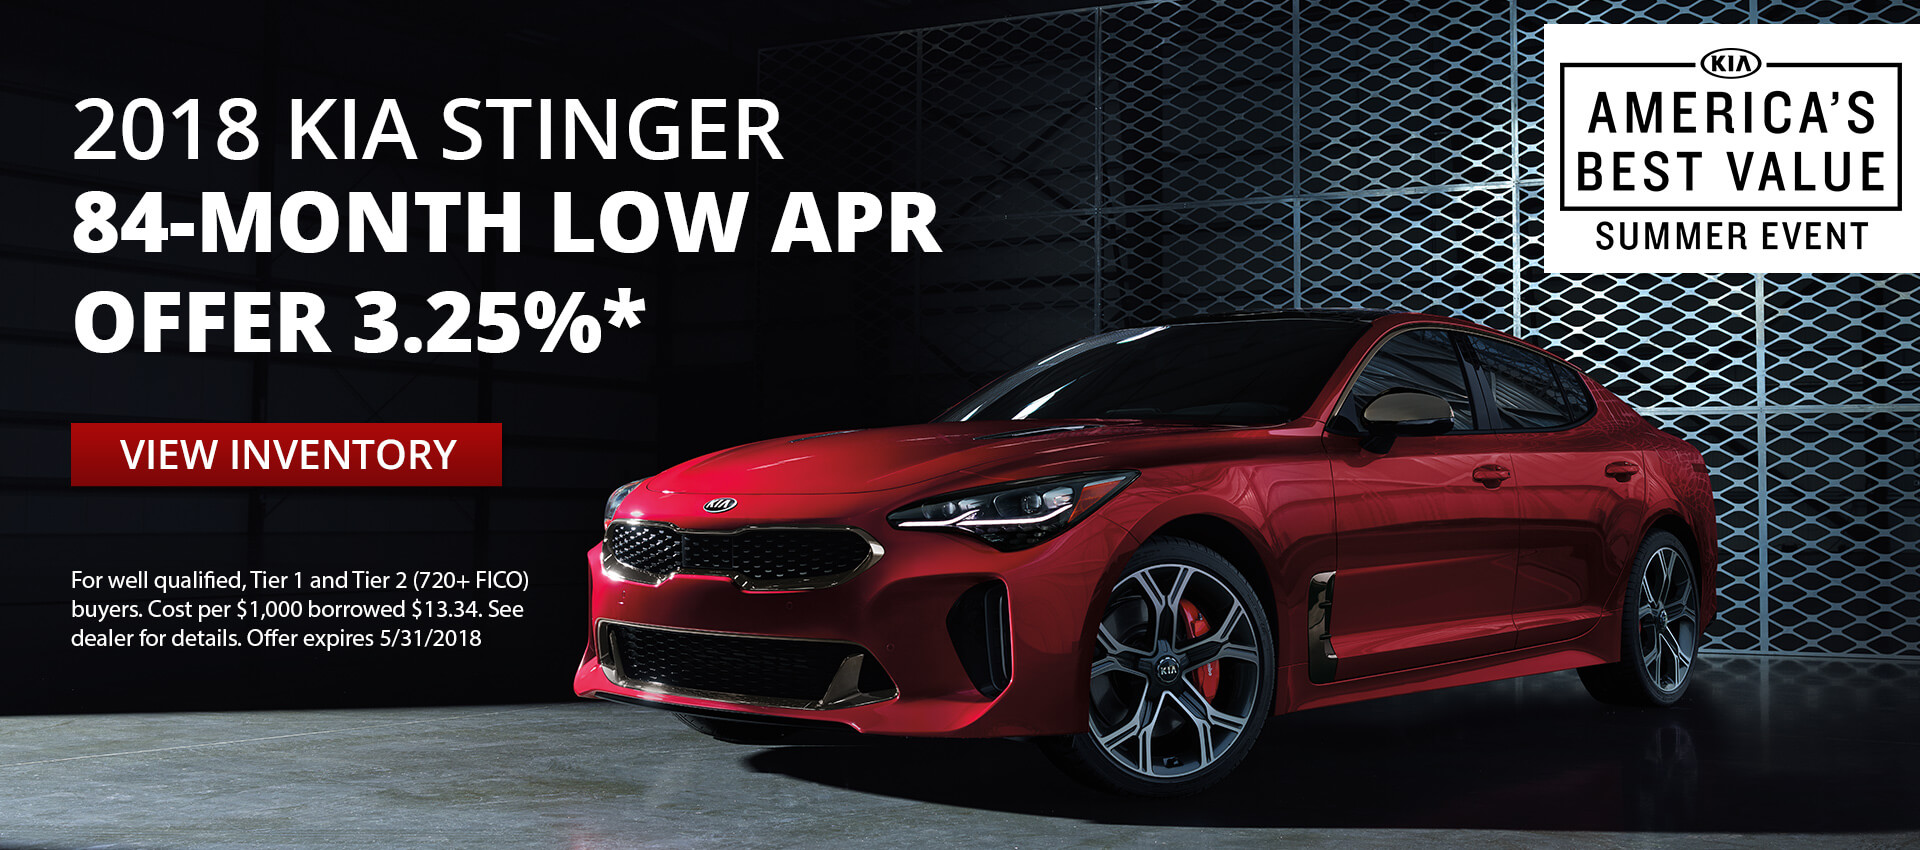 Kia Stinger 3.25% 84-month